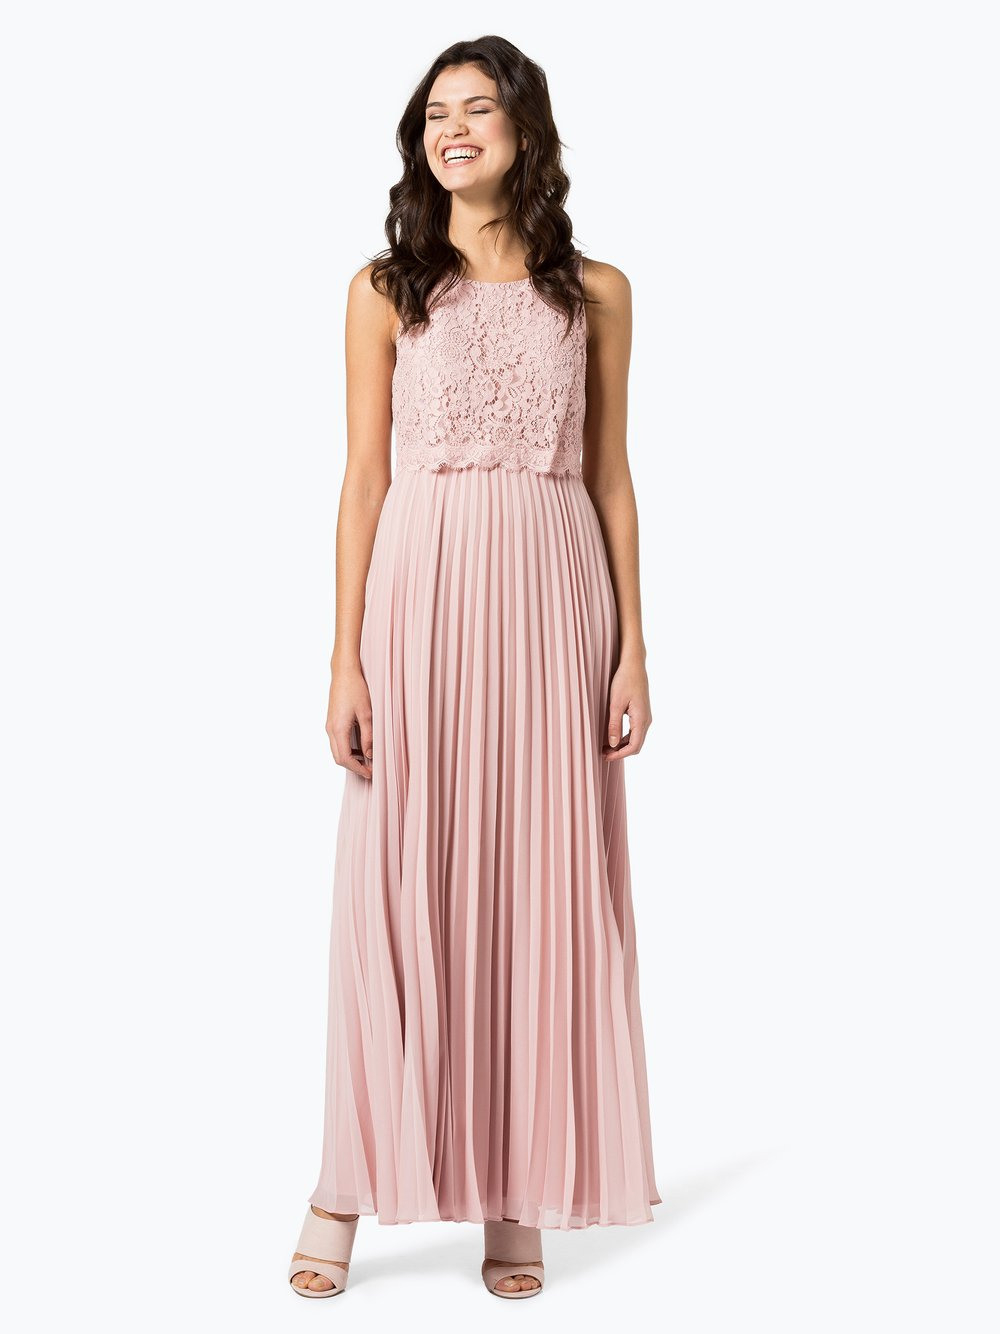 Formal Perfekt Marie Lund Damen Abendkleid StylishAbend Fantastisch Marie Lund Damen Abendkleid Stylish